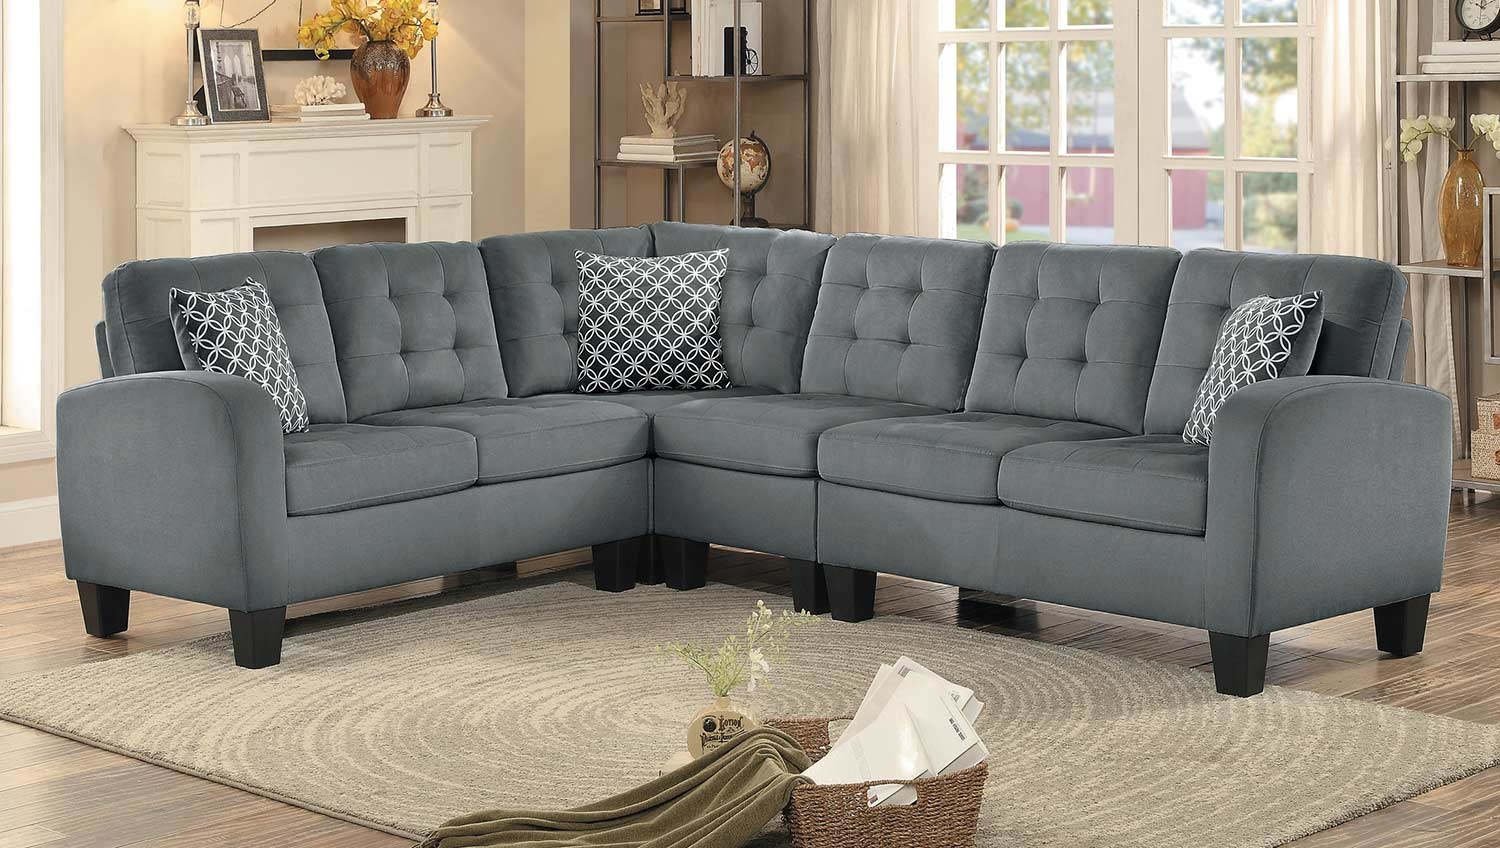 homelegance sinclair reversible sectional sofa gray fabric 8202gry